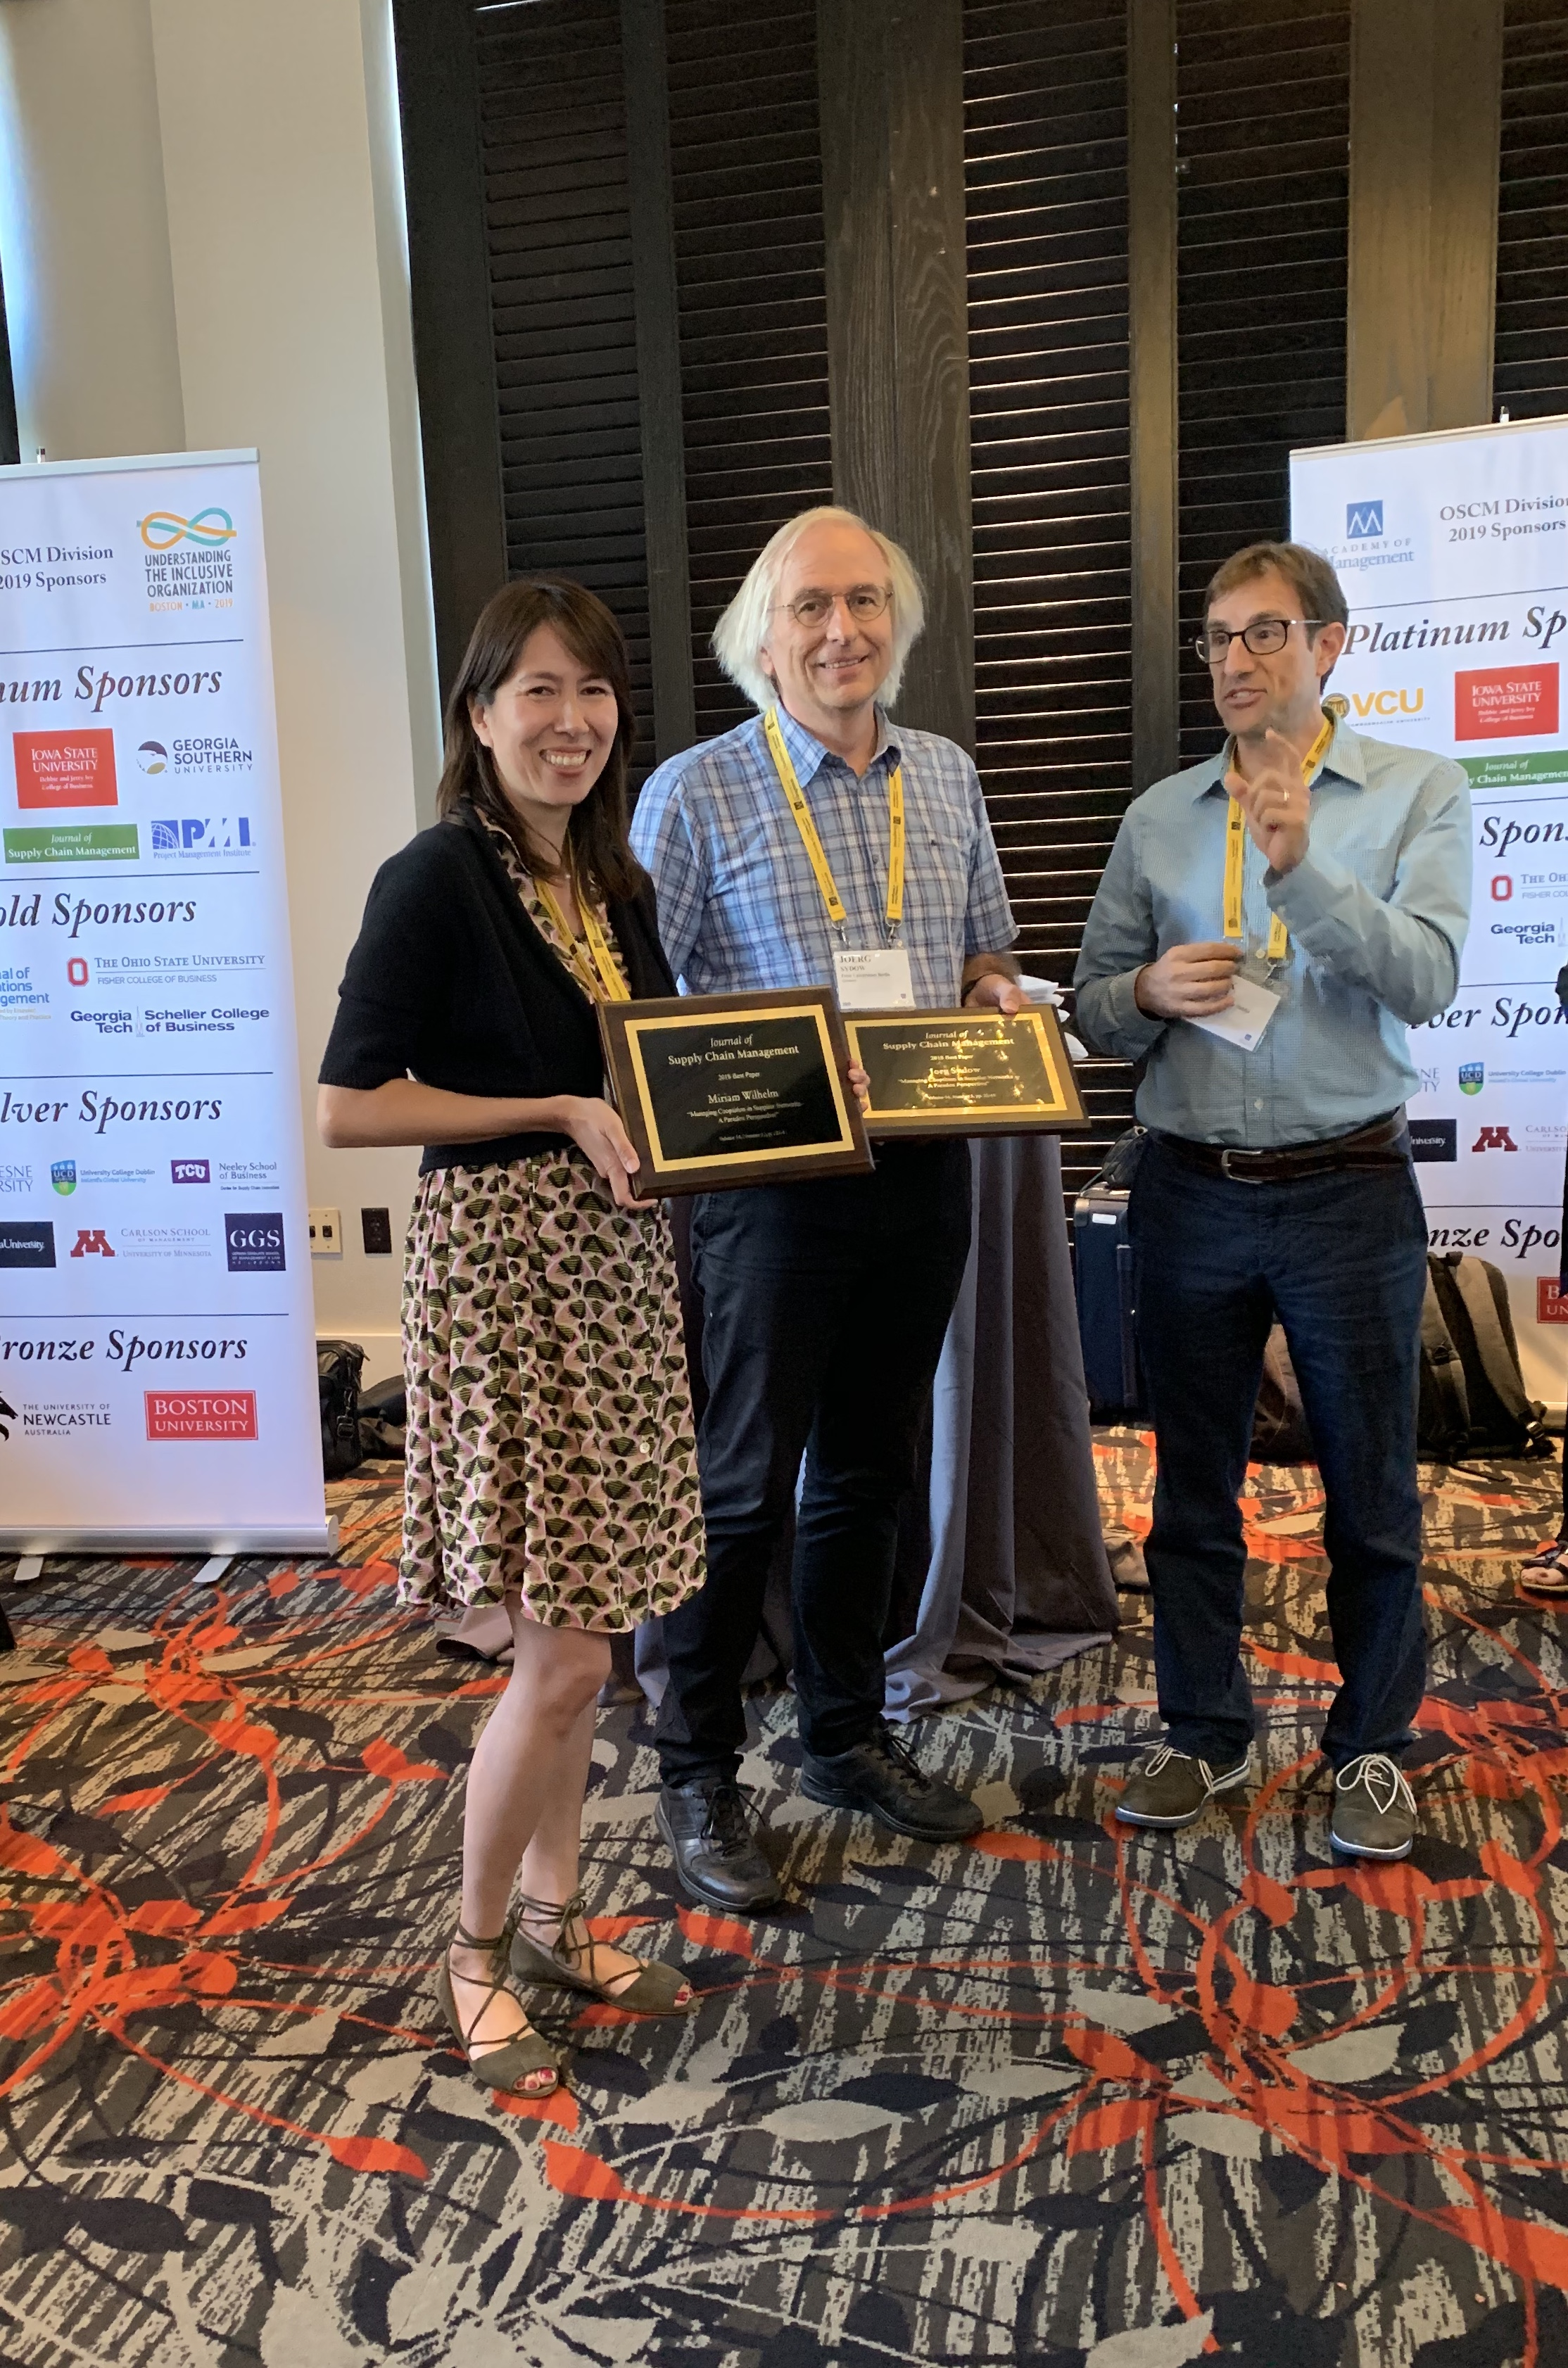 Miriam Wilhelm and Jörg Sydow accepting their Best Paper award